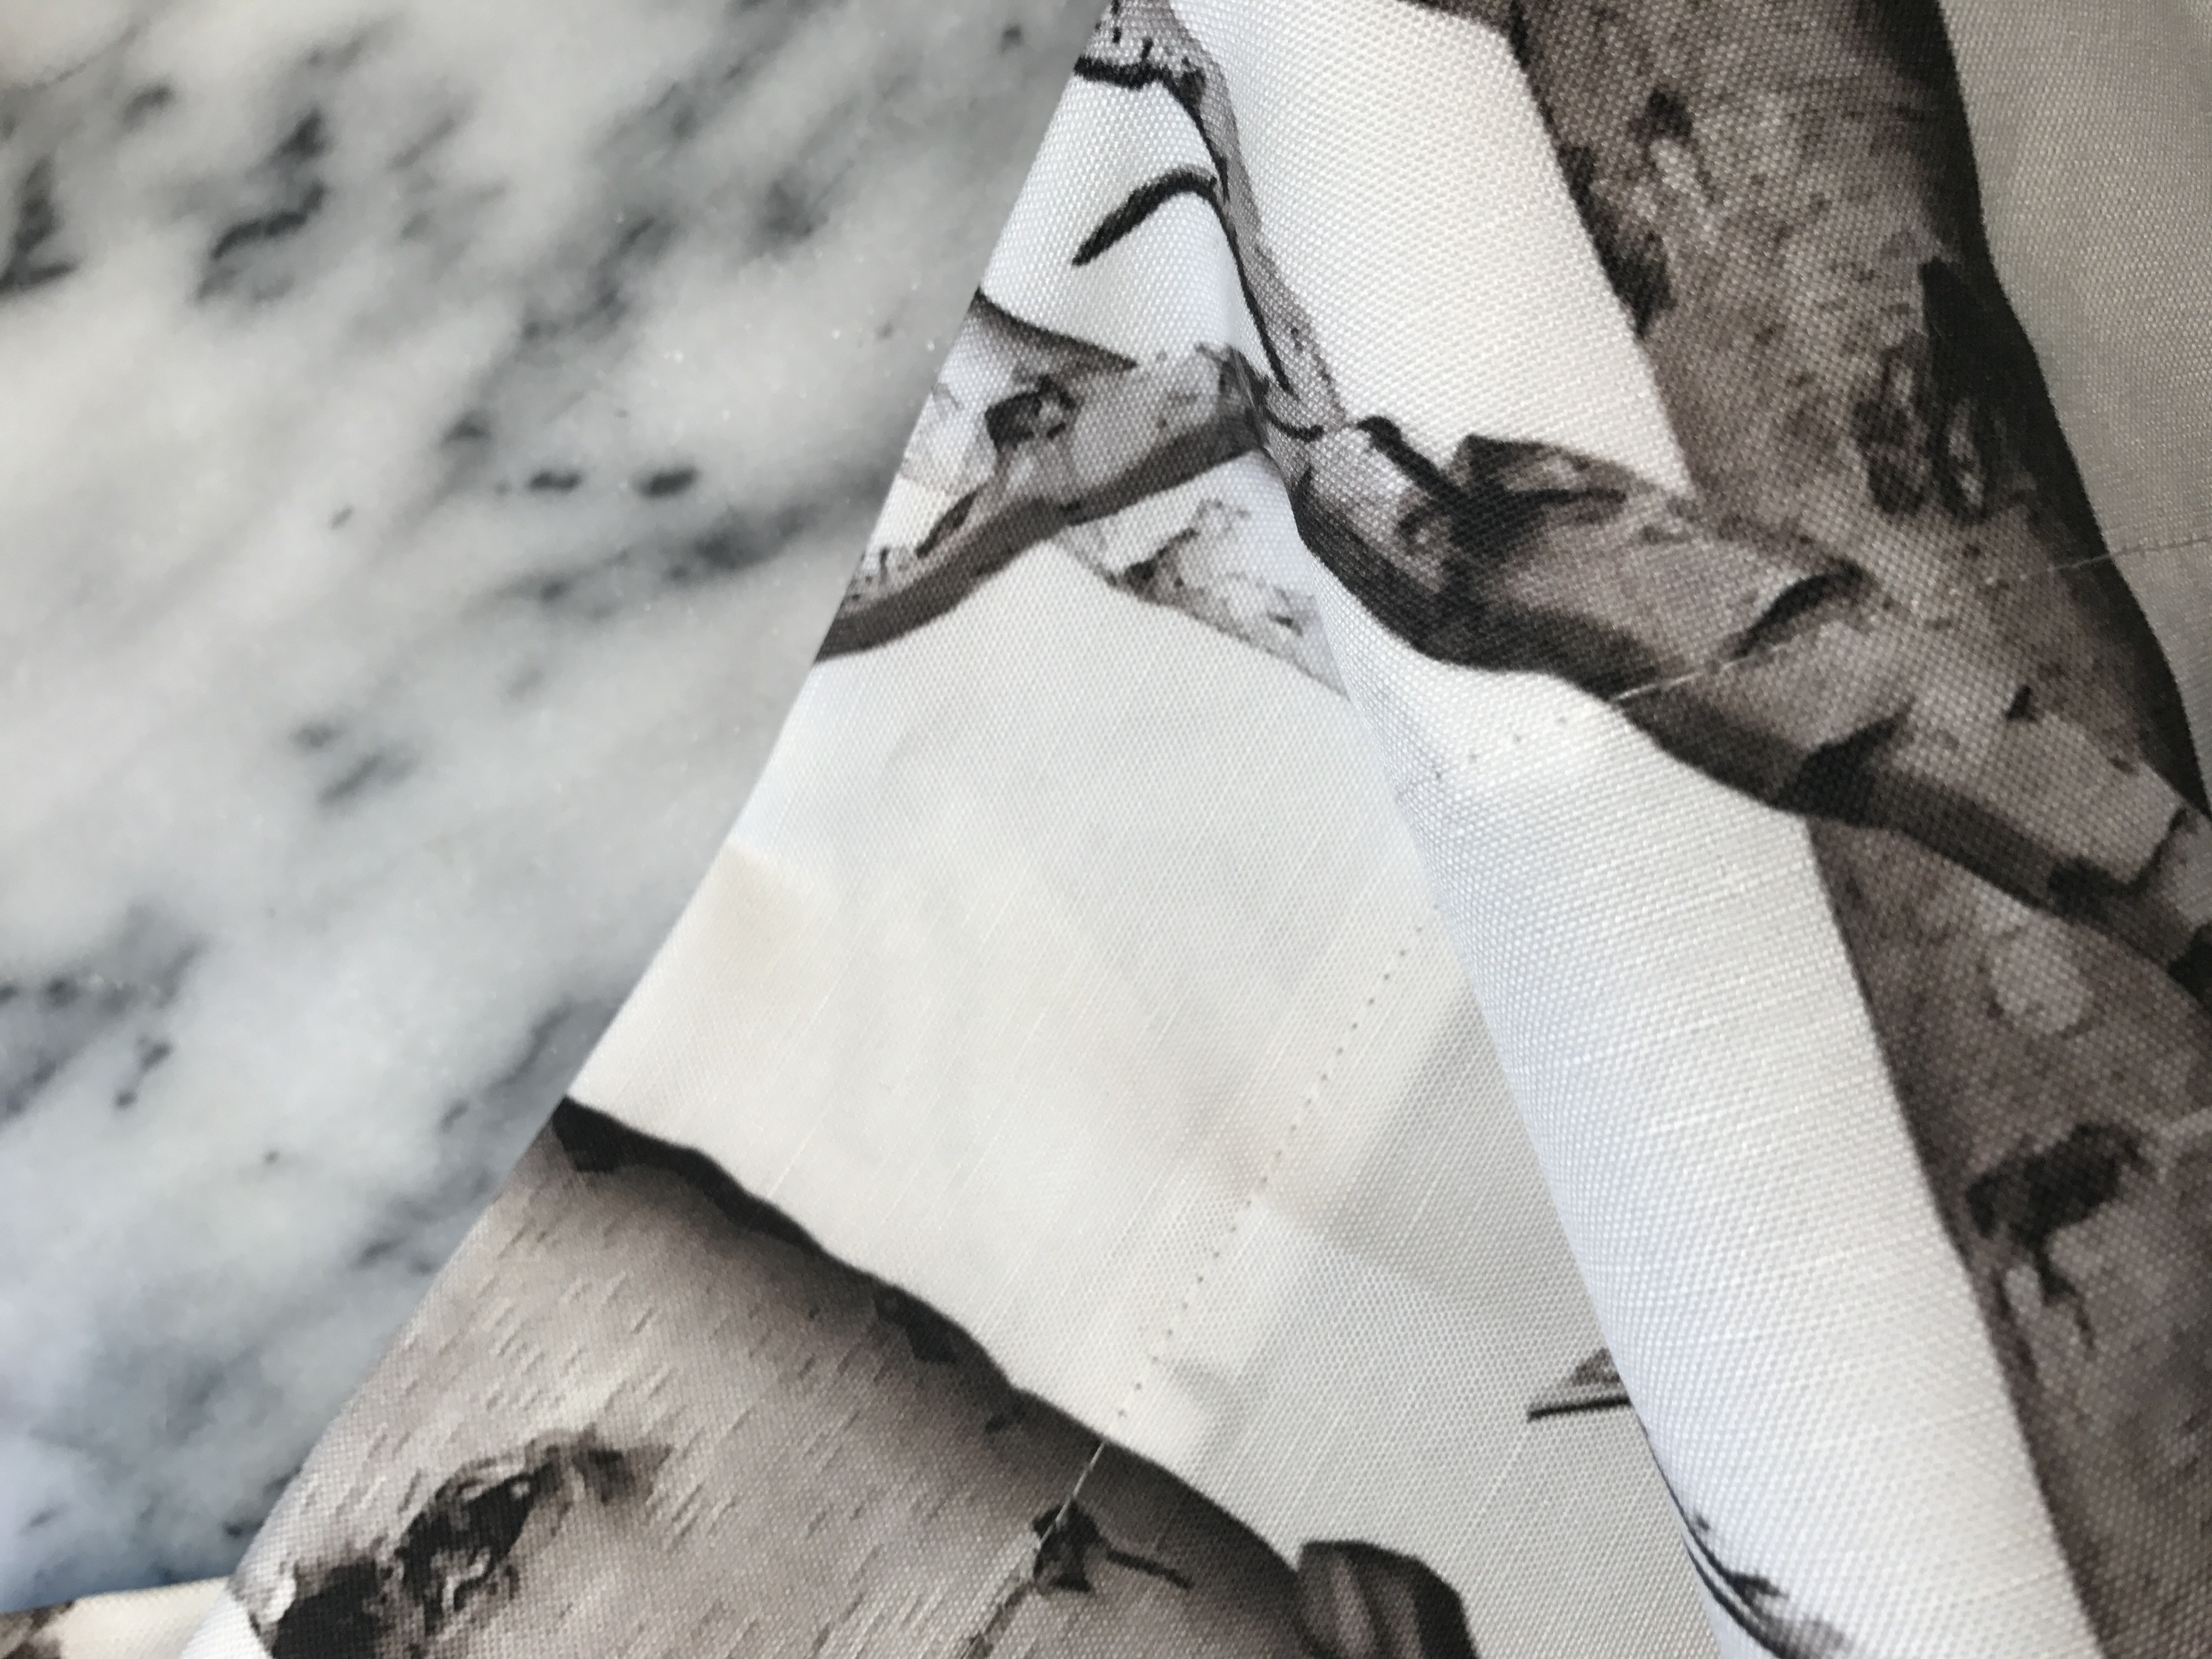 Birch Tree Fabric Window Panels - You now have a finished curtain panel repeat the same process for your second panel and you ll have a complete set of window treatments to awe and inspire